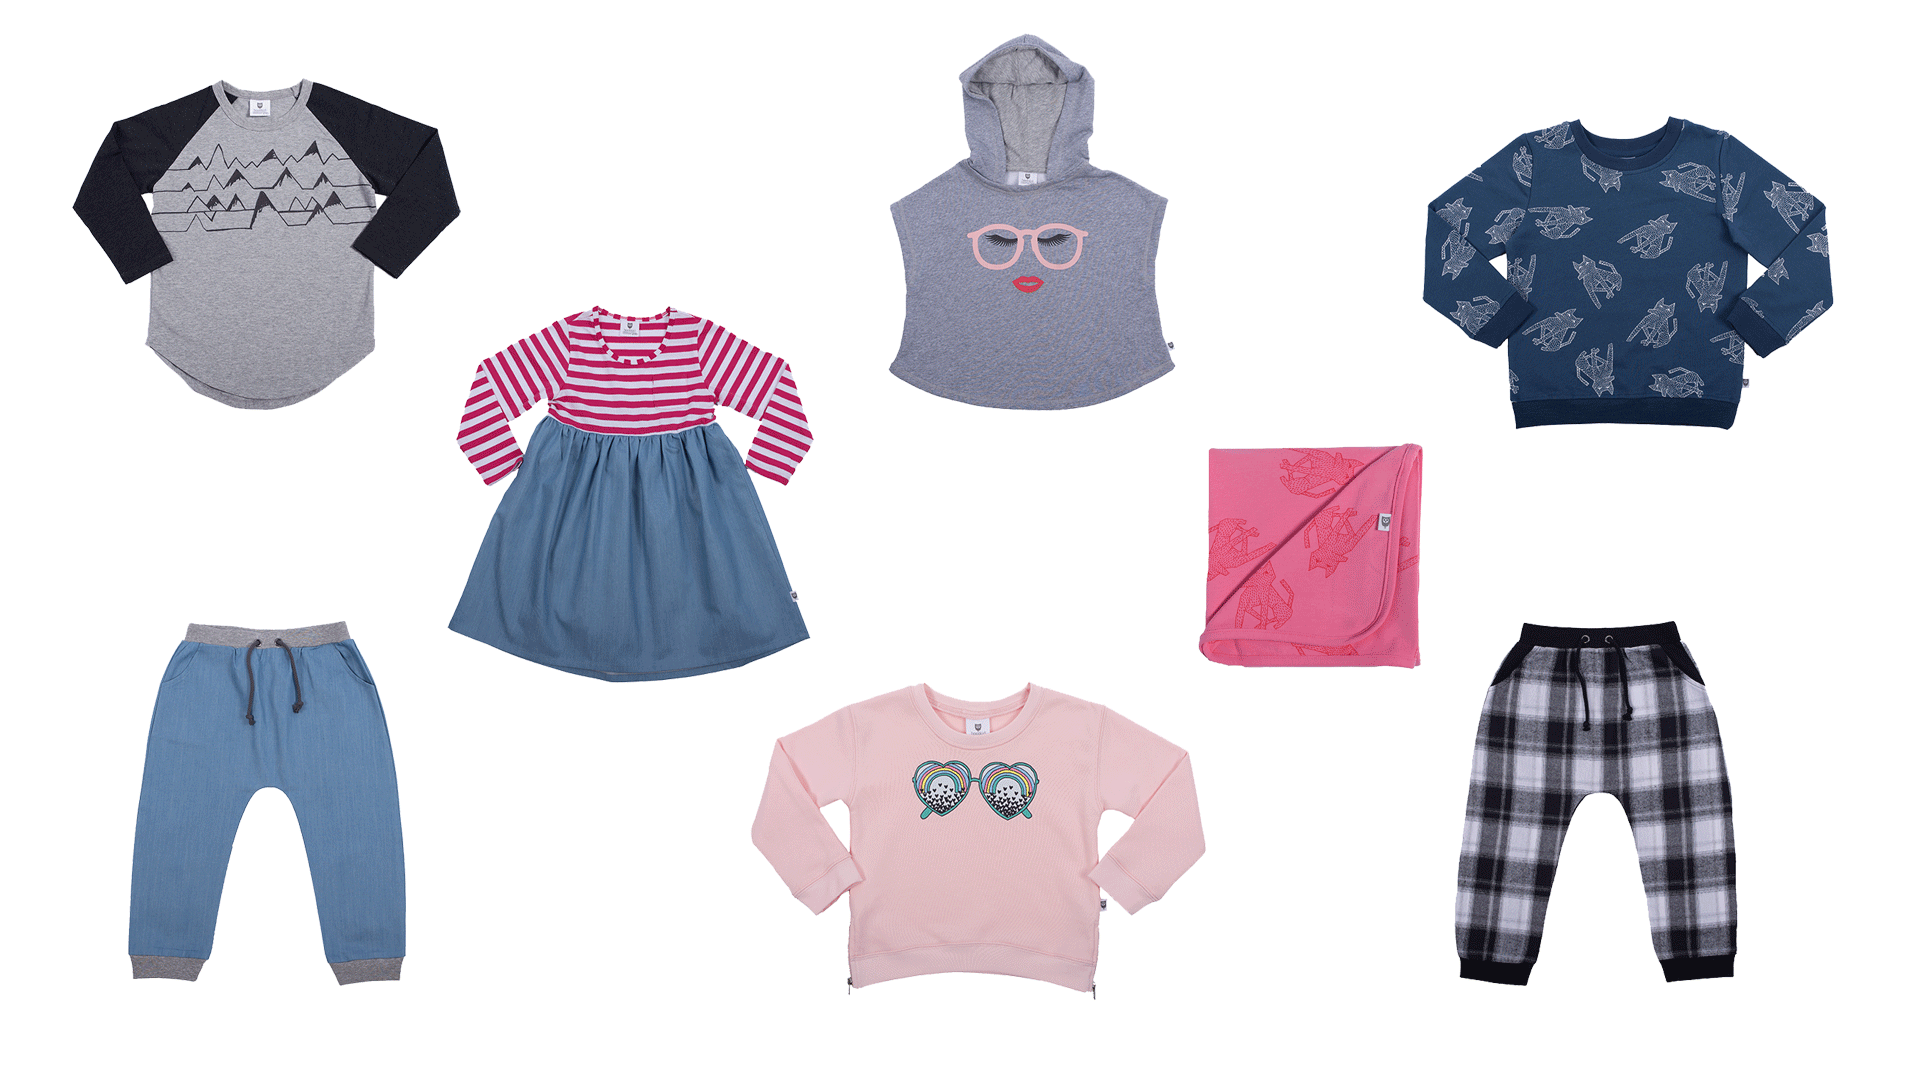 Branded Kids Clothing. We carry an amazing range of branded kids clothing Melbourne, selling for up to 90% off mediacrucialxa.cf sizes we stock range from newborn to 16 years old, so there is Location: Theobald St, Thornbury, , VIC.